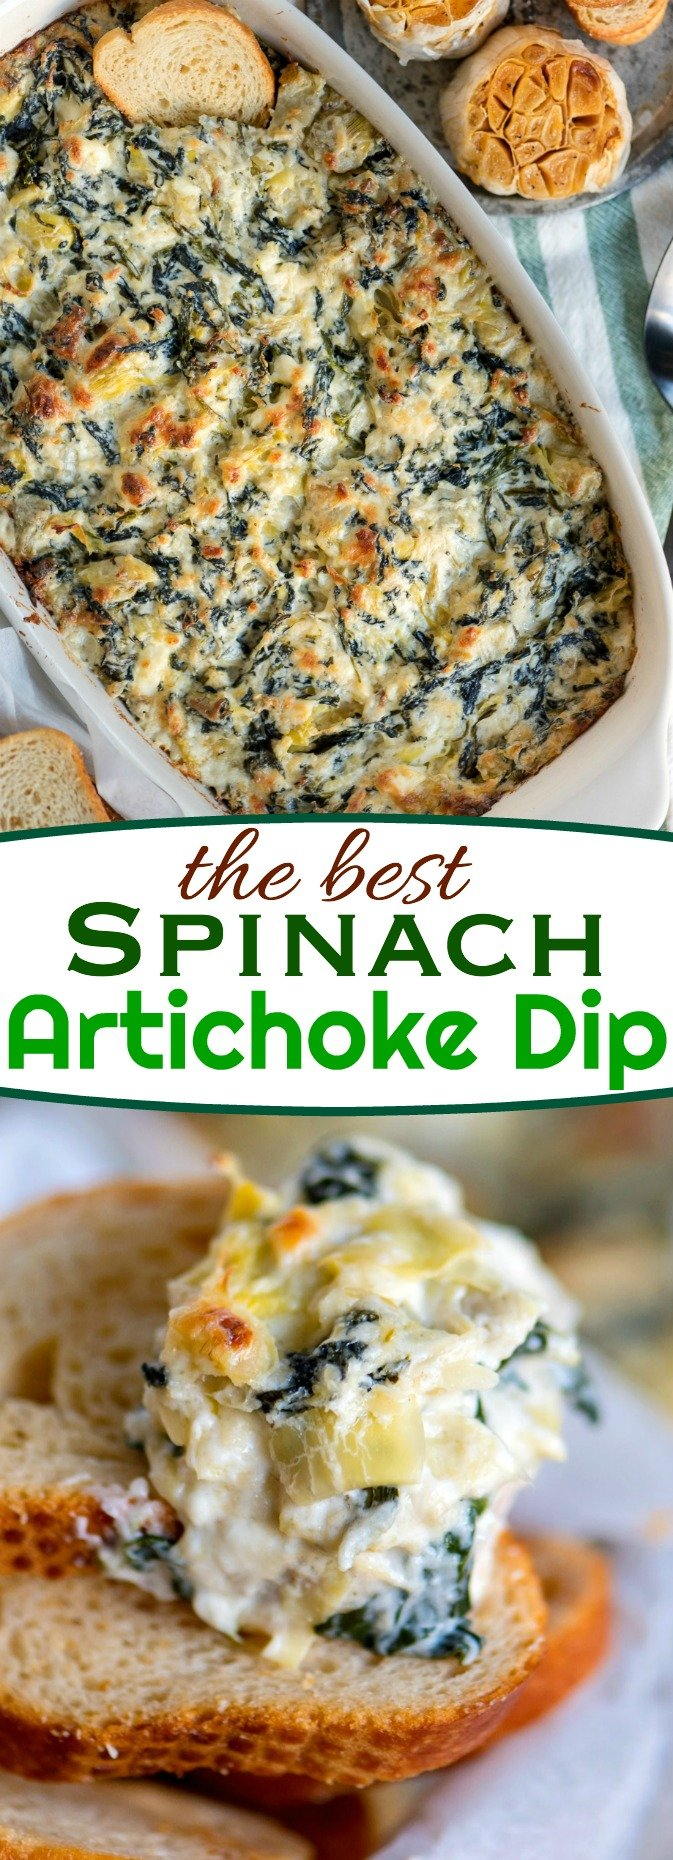 Spinach Artichoke Dip is impossible to resist and ready to go in just about 30 minutes. Fresh from the oven, it's creamy, cheesy goodness is best served with chips, toasted baguette slices or celery sticks. It's an easy and delicious dip that is perfect for gatherings, BBQs or game day. // Mom On Timeout #recipe #appetizer #artichoke #spinach #cheese #dip #gameday #easy #baked